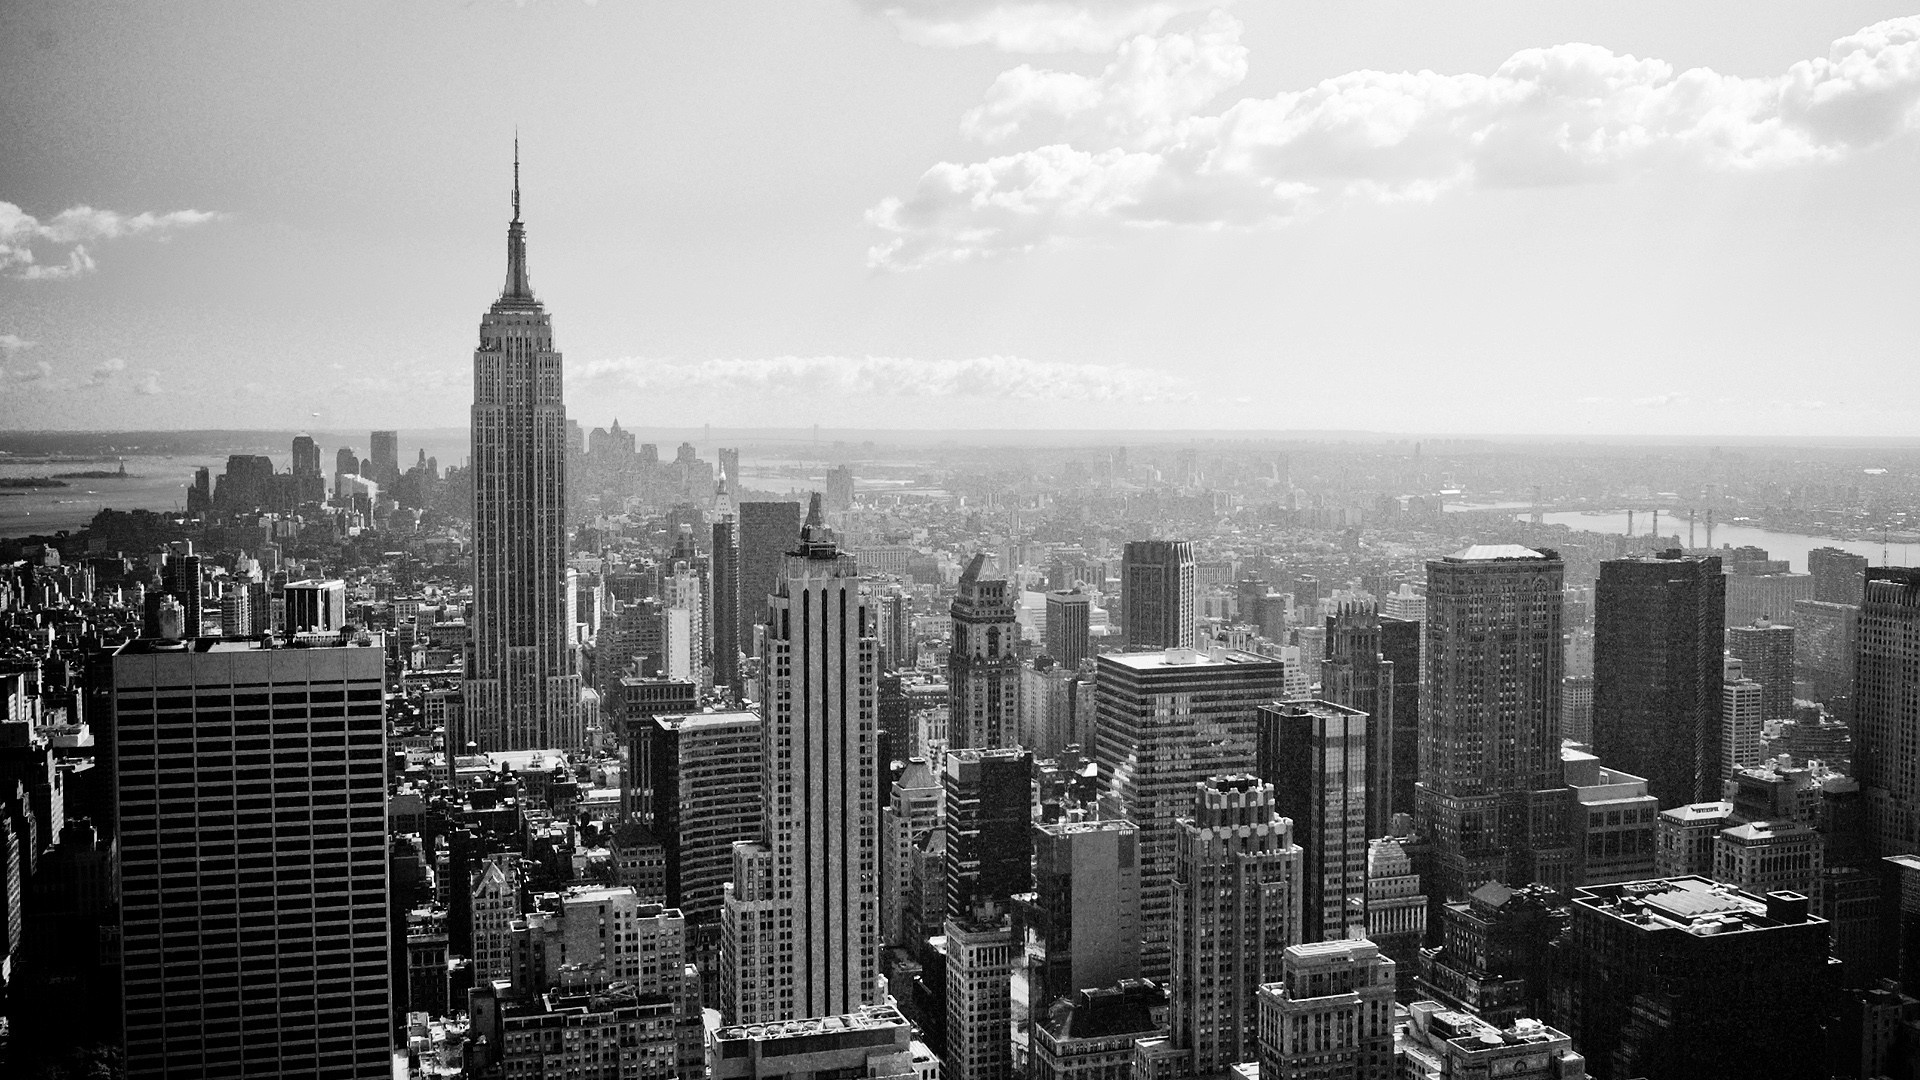 Empire State Building New York City wallpaper 3528 1920x1080